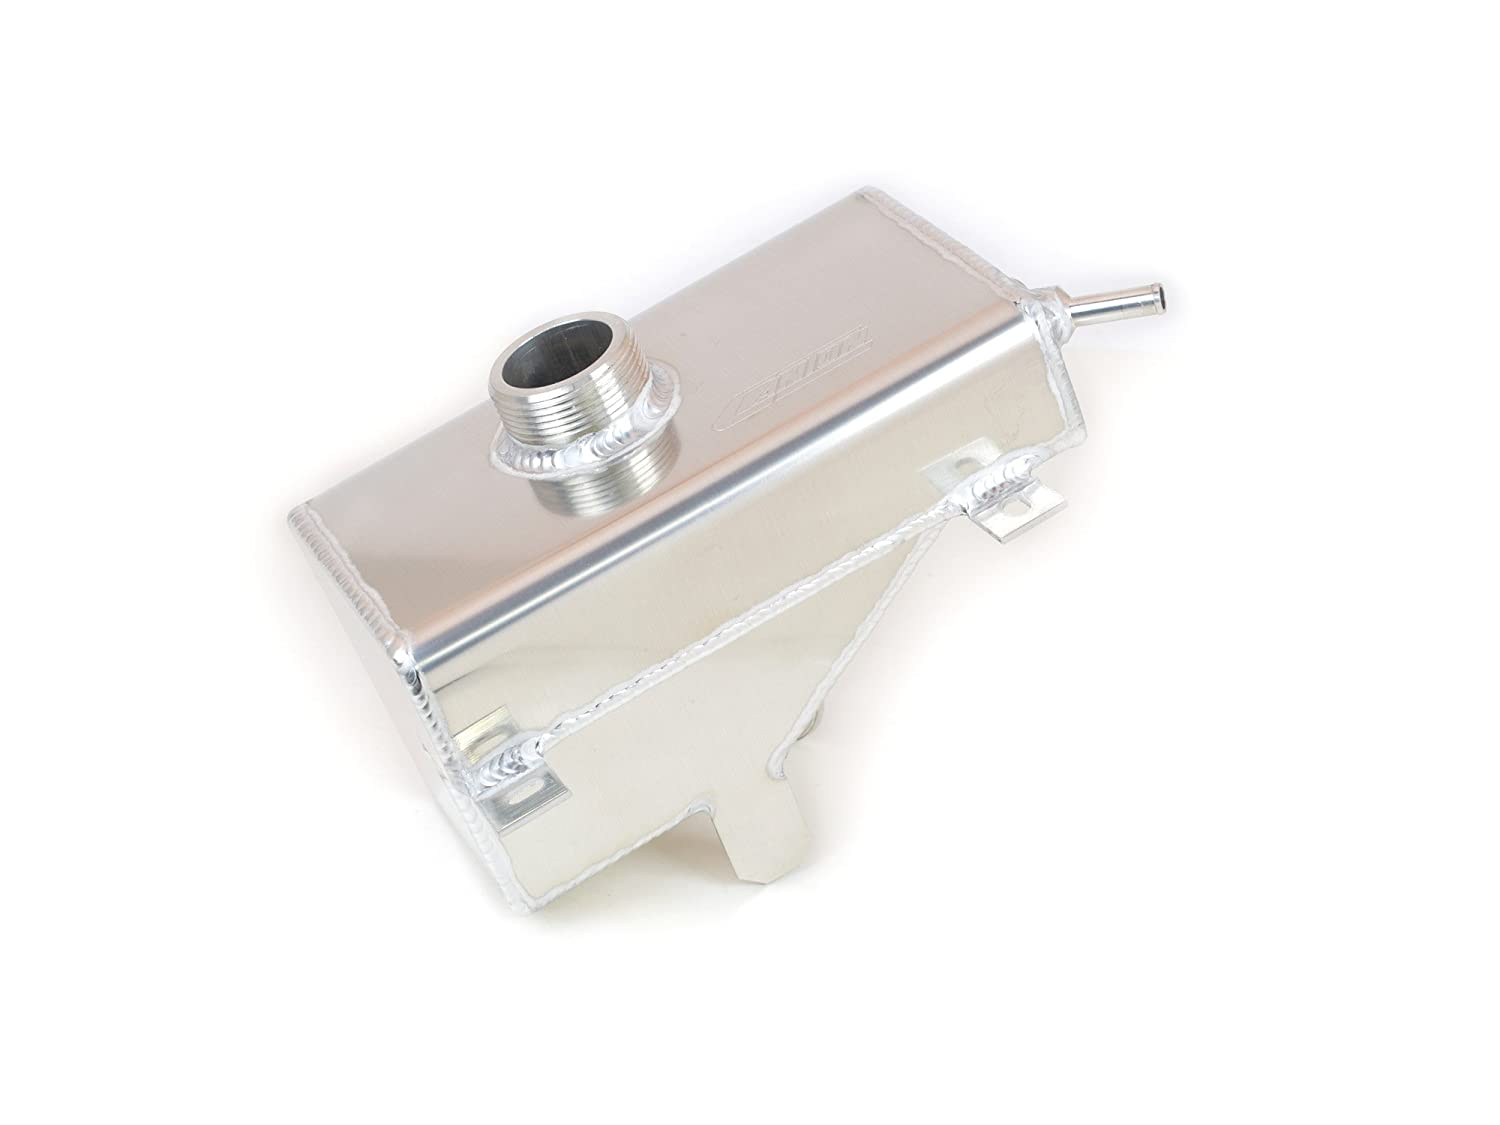 Canton Racing 80-236S Aluminum Expansion Tank 05-09 Mustang 11-14 GT 500 W Stock Neck, 1 Pack